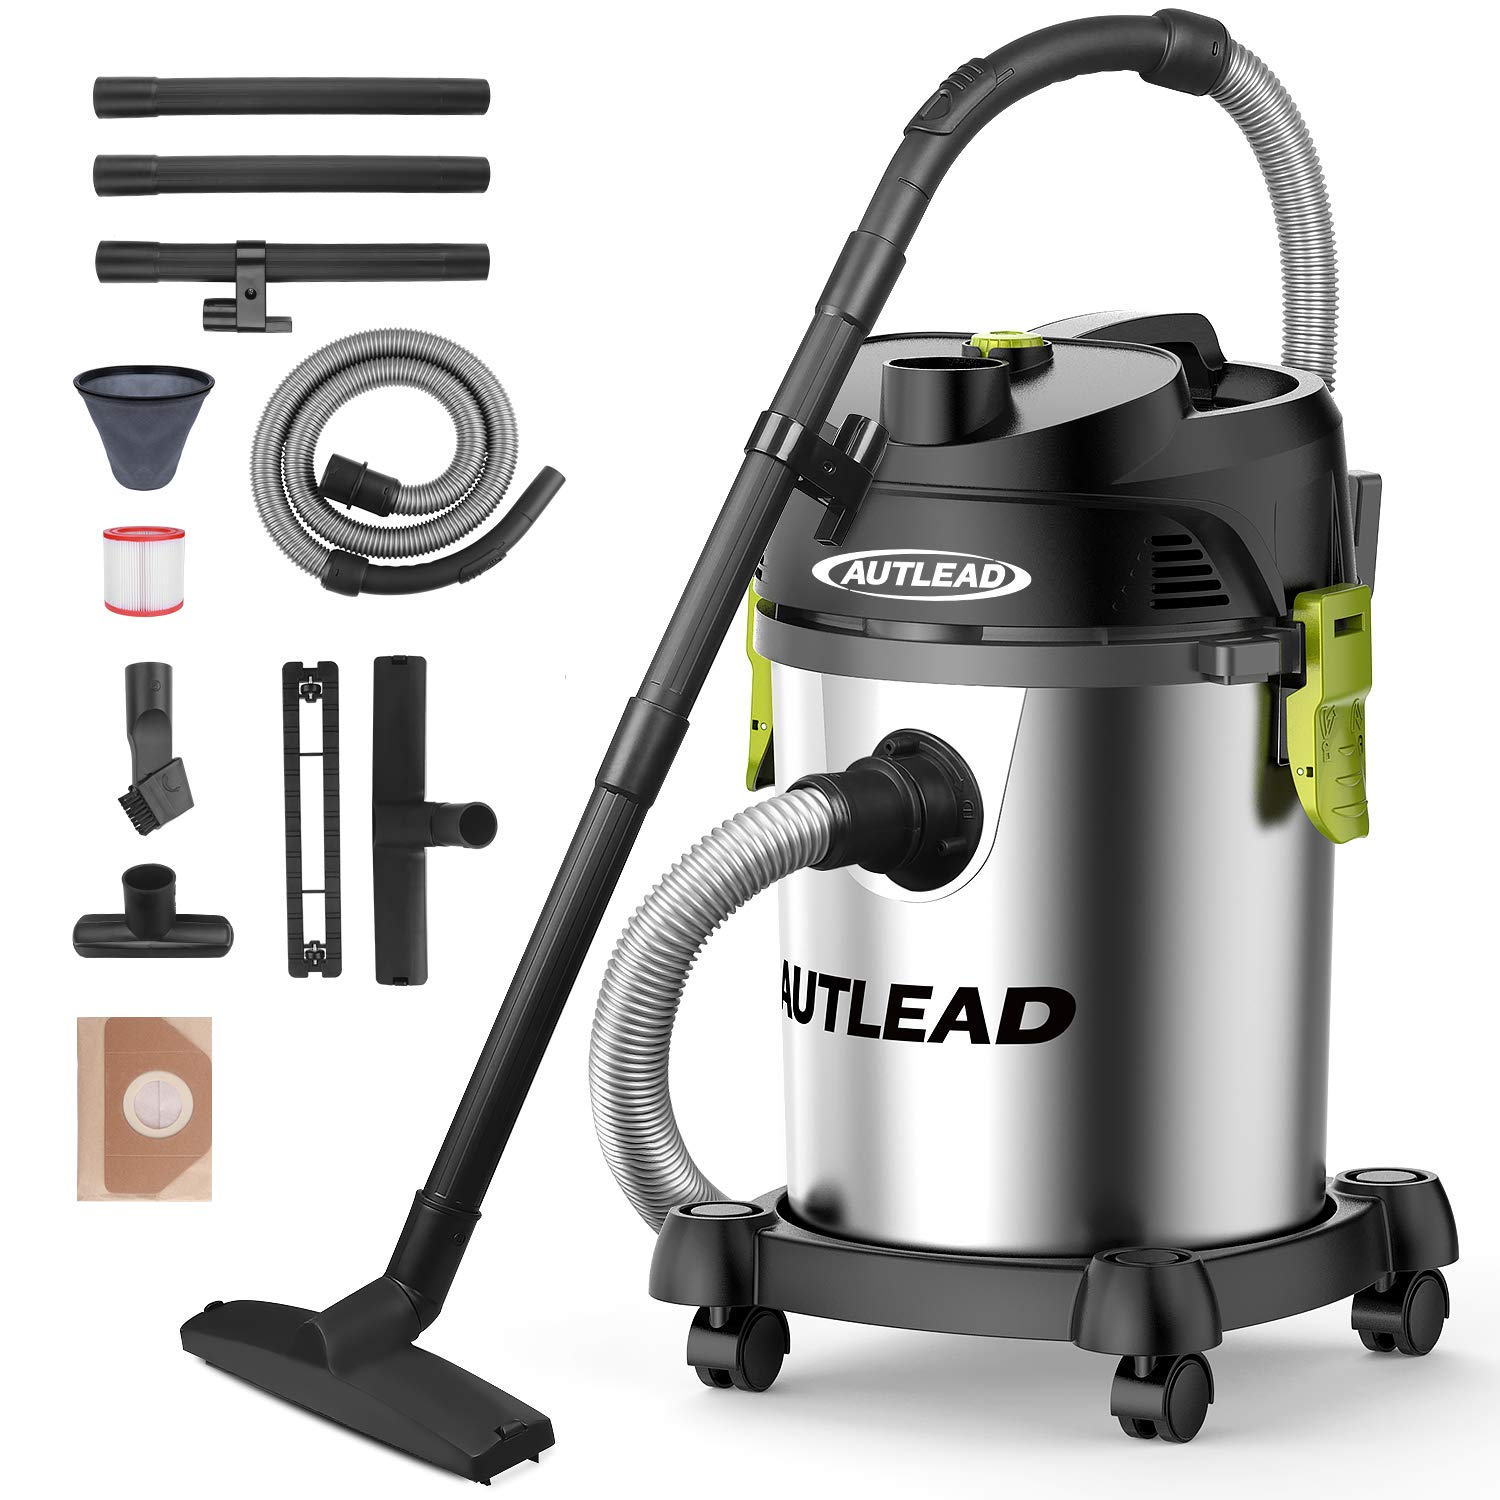 AUTLEAD Vacuum WDS03A 5 Gallon 1200W Pure Copper Motor 5.5 HP Wet/Dry/Blow 3 in 1 Shop Vac, Stable Round Bucket Design with Pulley System, HEPA Disposable Bag, 3 Brush Included, 5.5 gal, Black by AUTLEAD